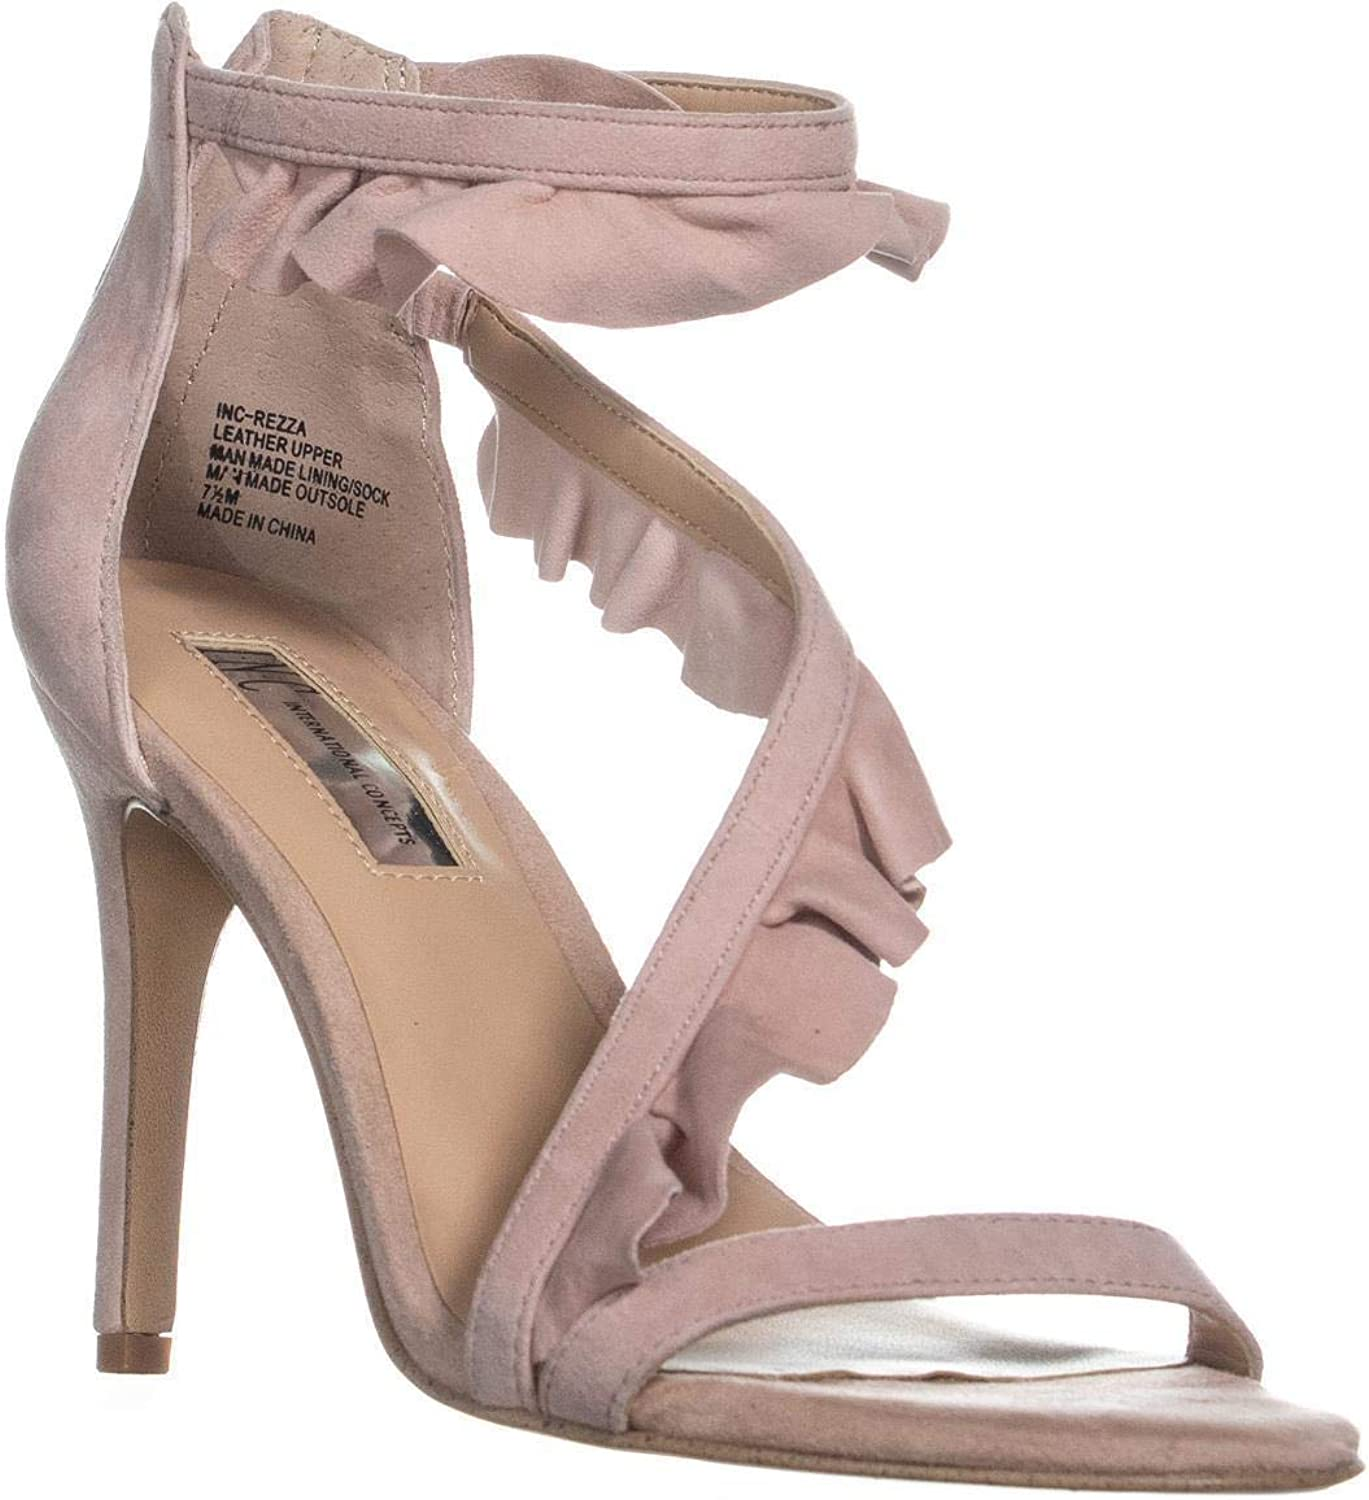 Inc Womens Rezza Suede Heels Dress Sandals Pink 8 Medium (B,M)